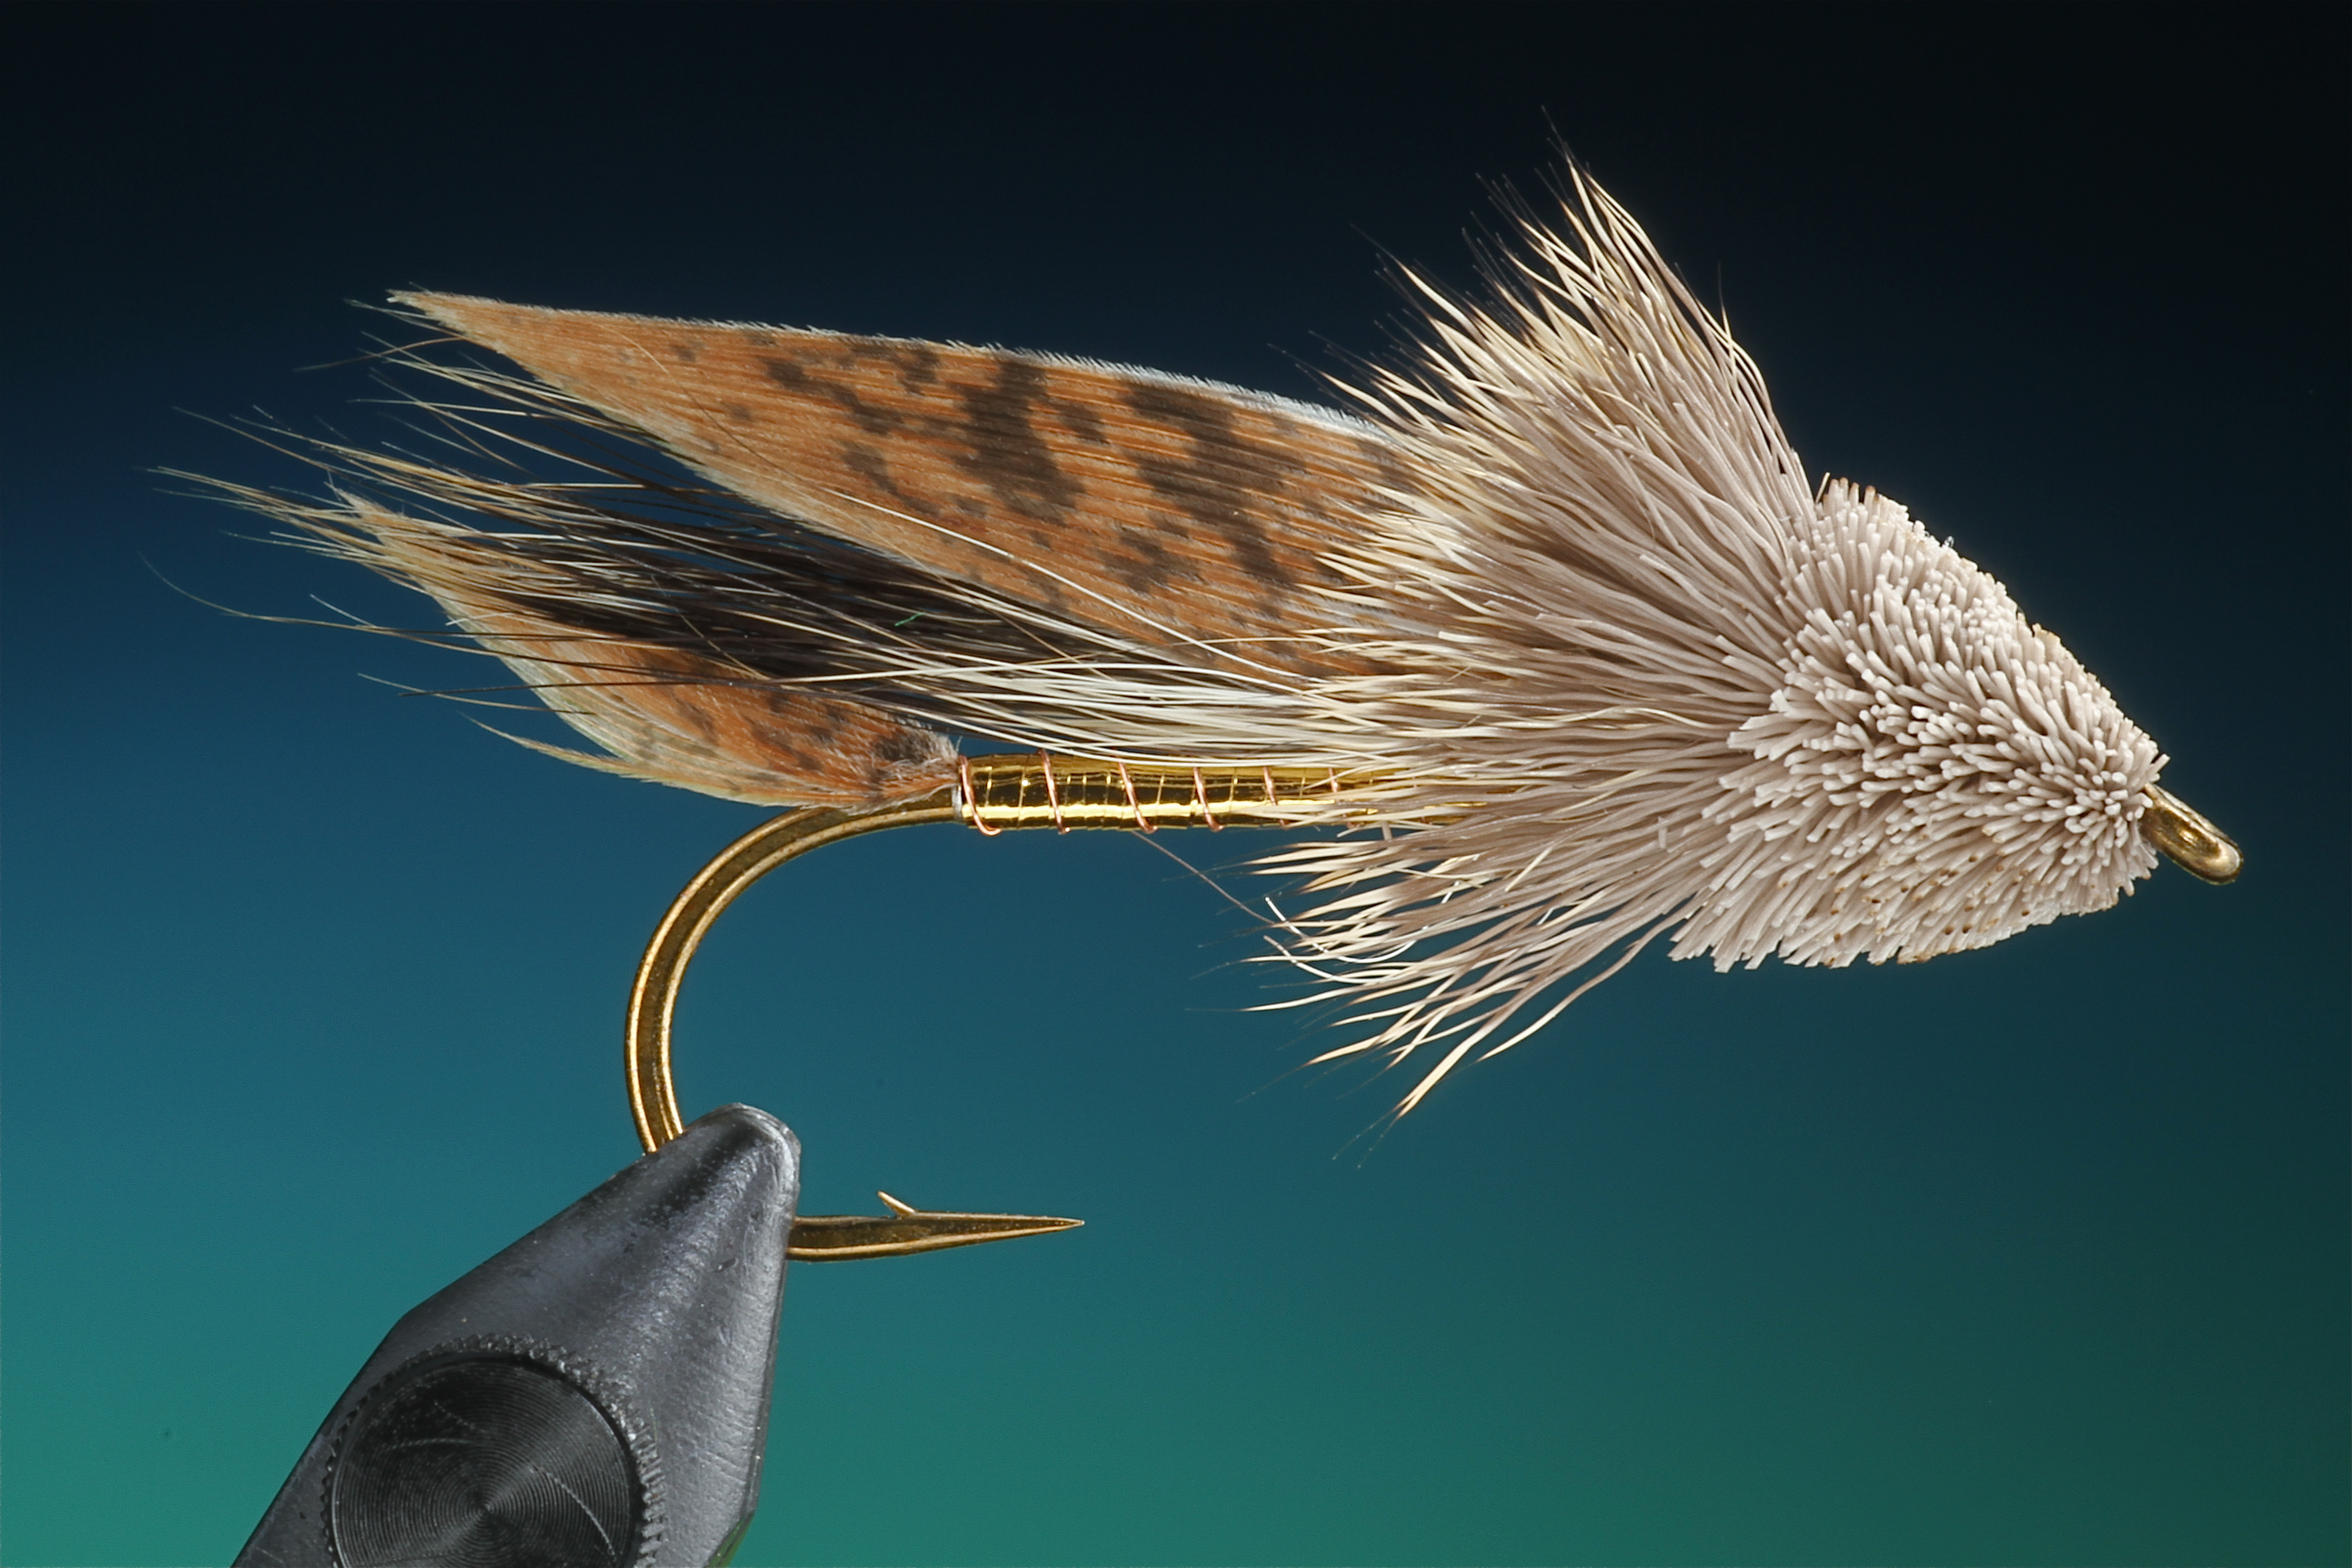 fly tying course 10 muddler minnow thefeatherbender